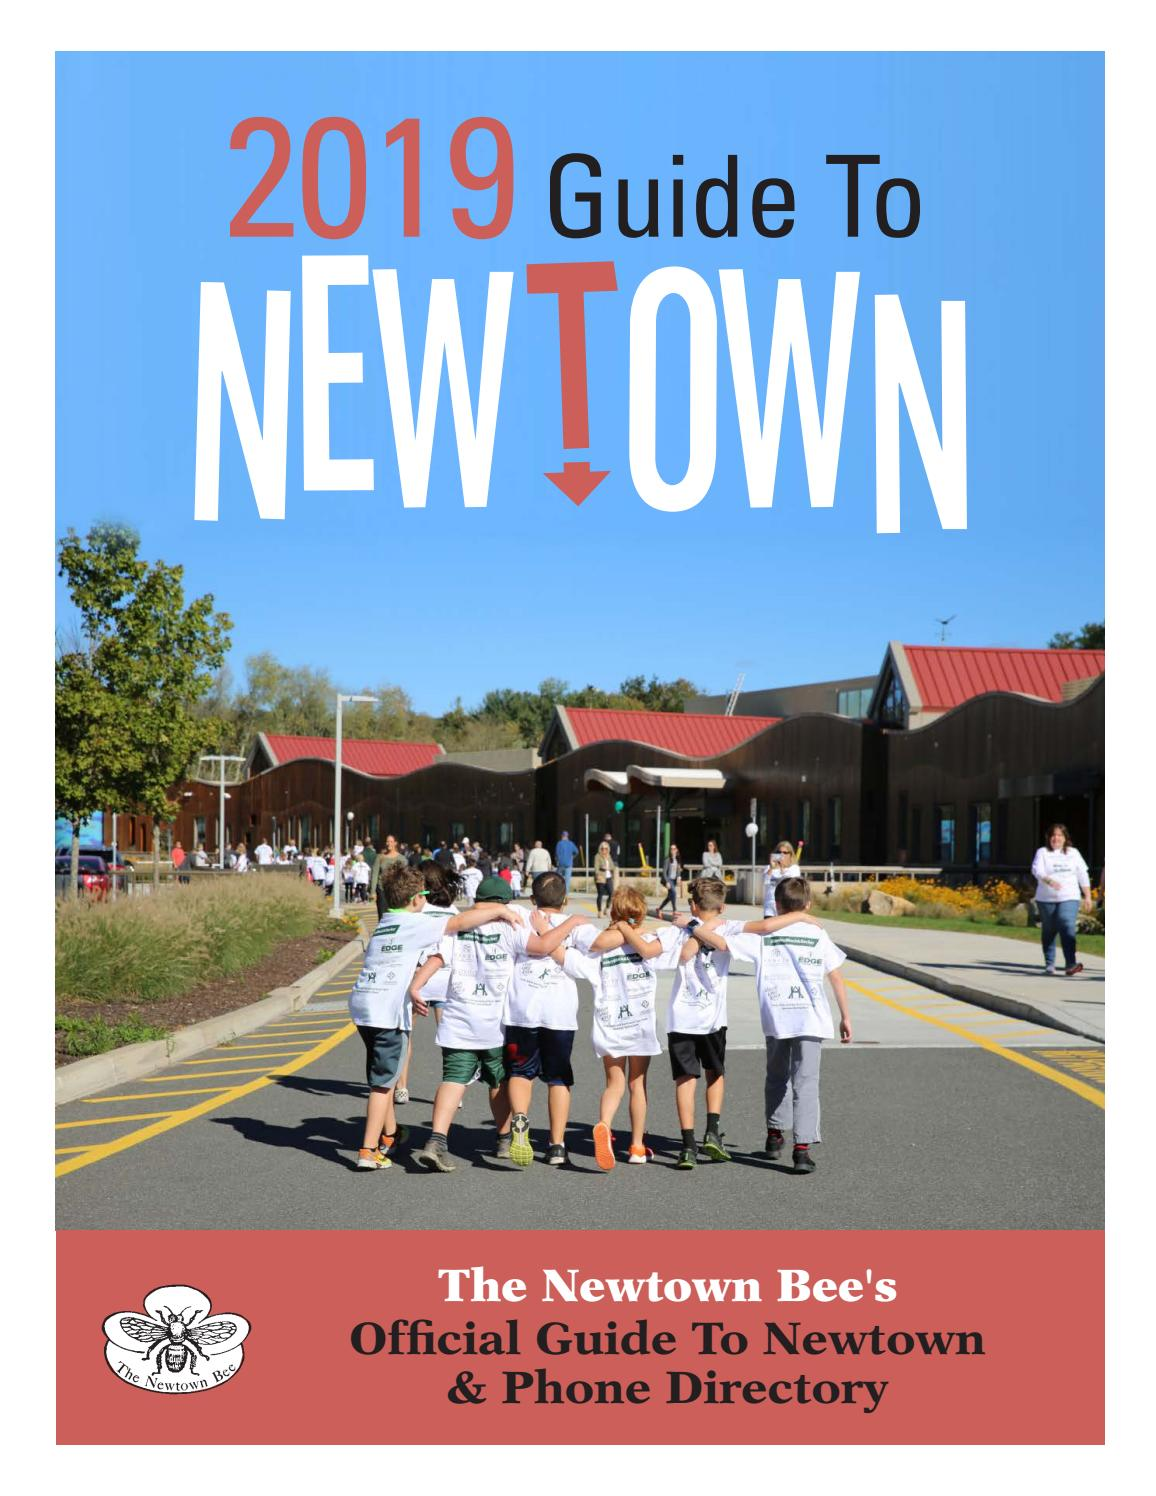 Guide To Newtown 2019 by Bee Publishing Co - issuu